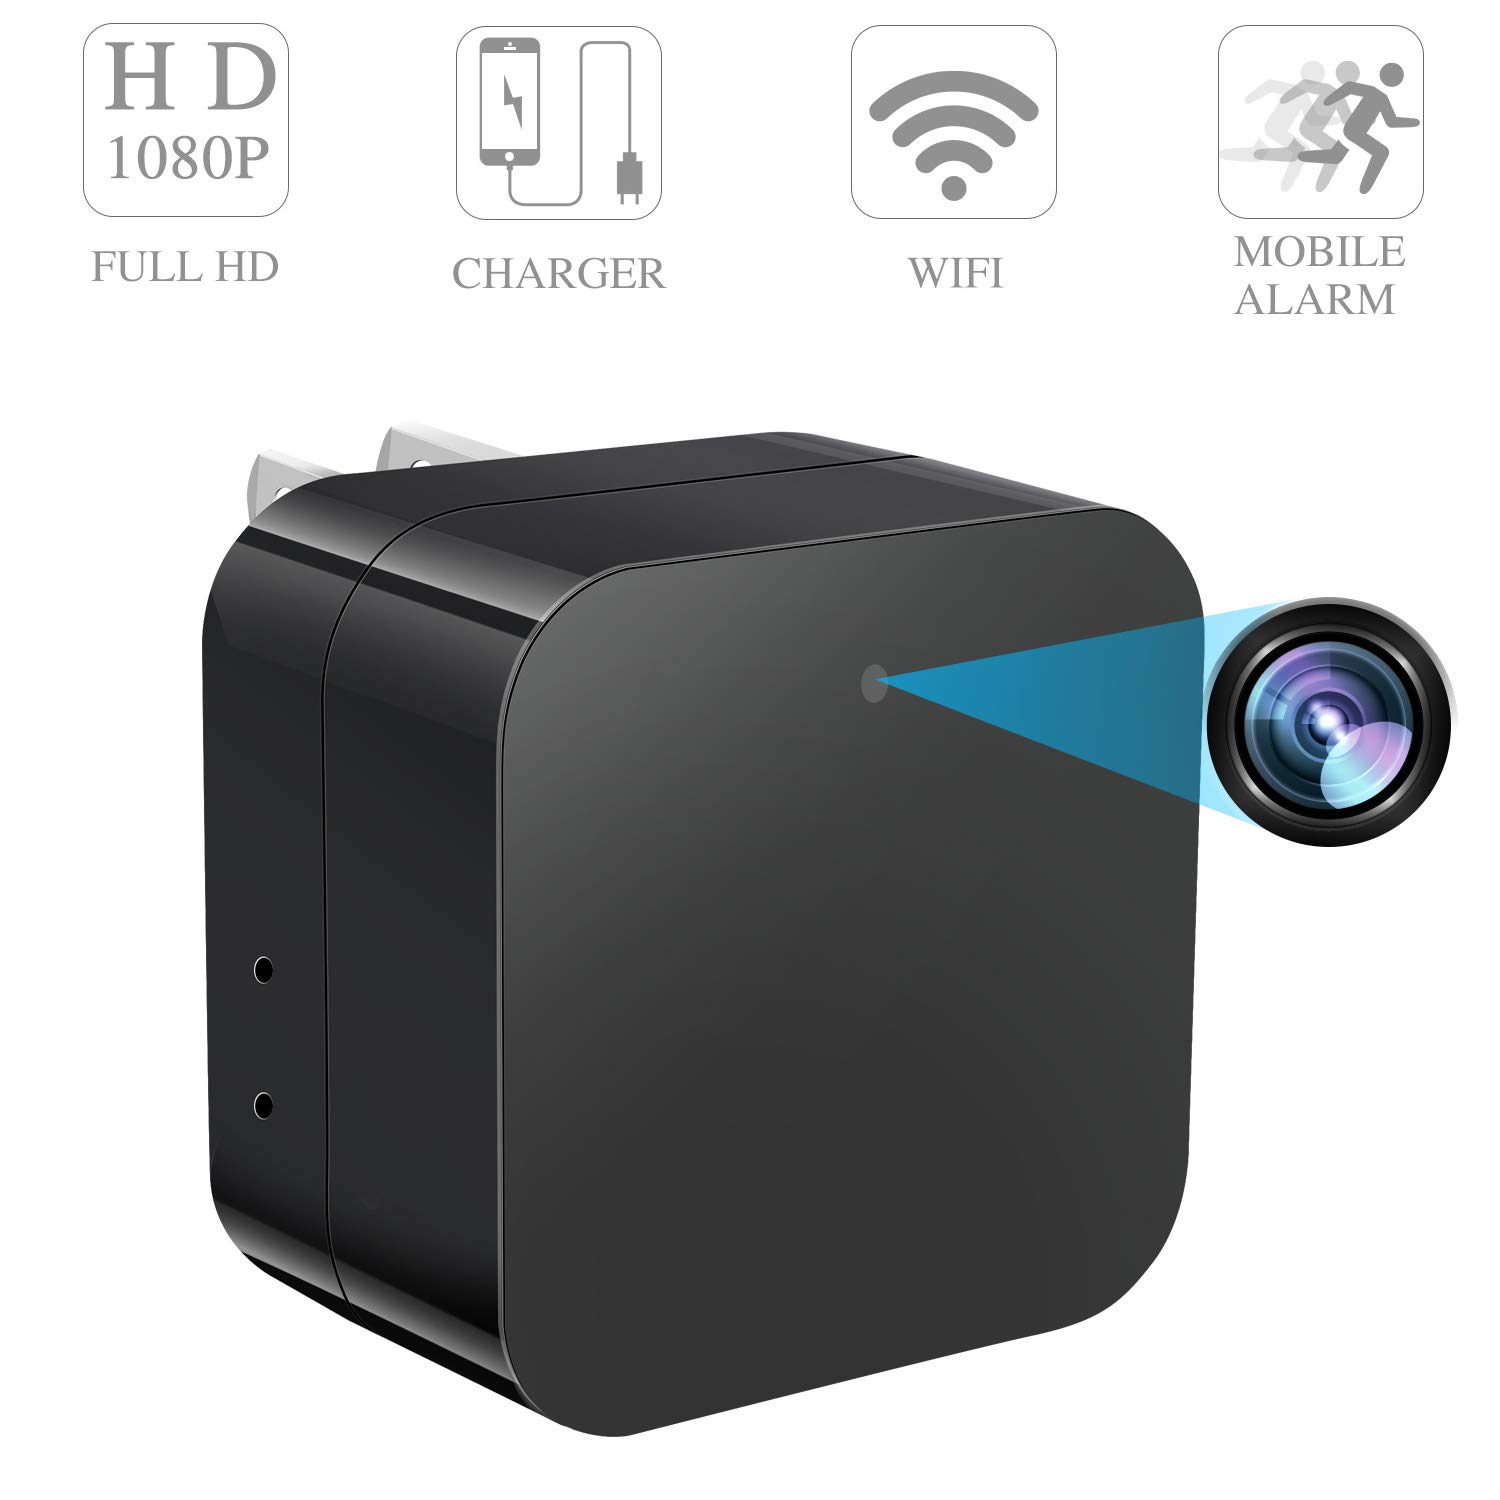 Spy Camera Wireless Hidden Camera WiFi - USB Wall Charger Camera - Tiny Mini Home Security Monitoring Cam with Cell Phone iPhone App - Nanny Camera - 1080P HD - Motion Detection - Smart Snap Cam